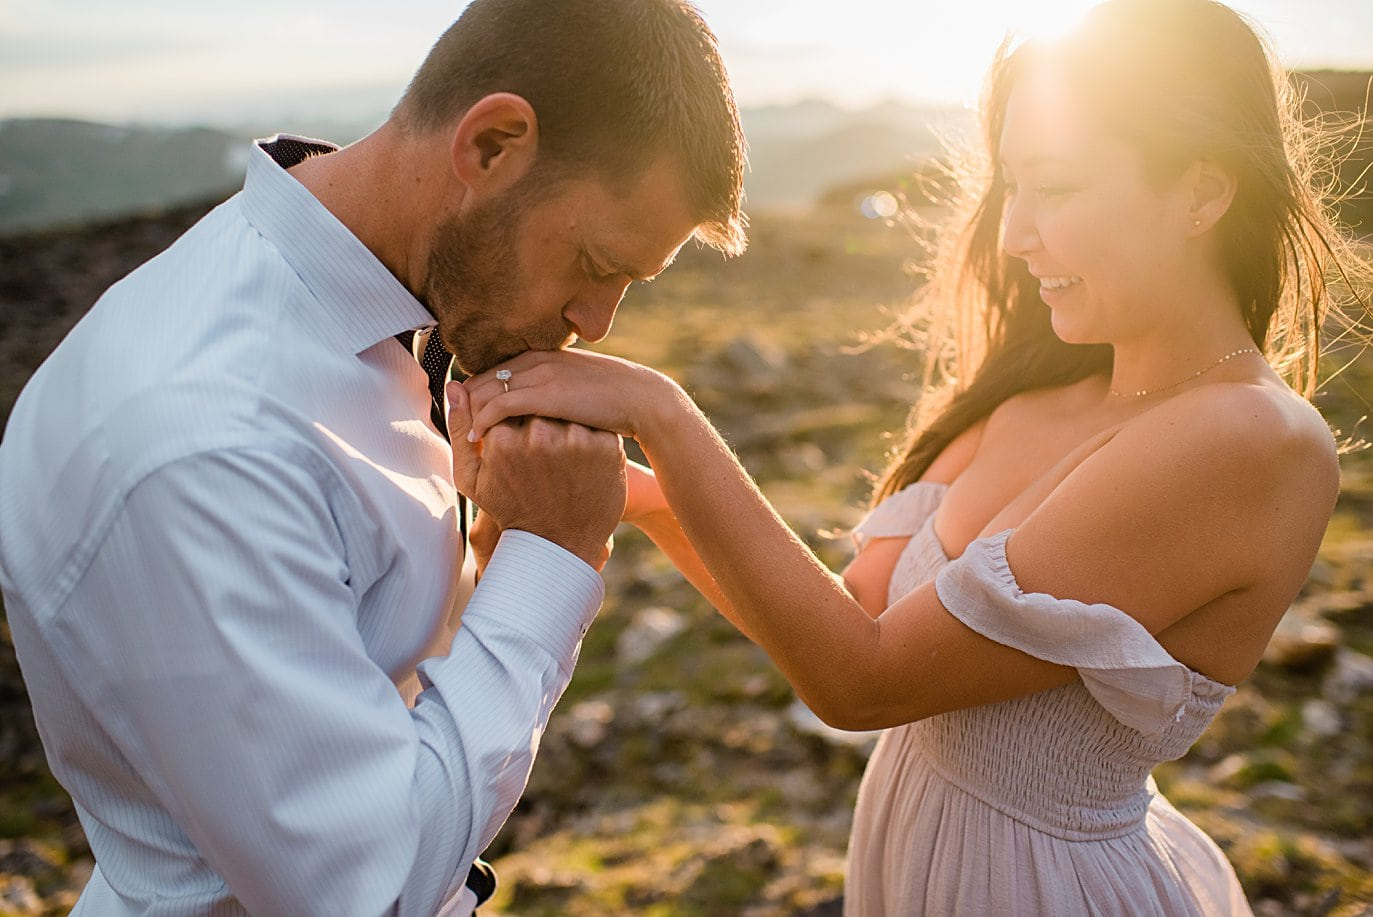 groom kisses fiance's hand at sunset at top of trail ridge road during engagement session by Estes Park engagement photographer Jennie Crate